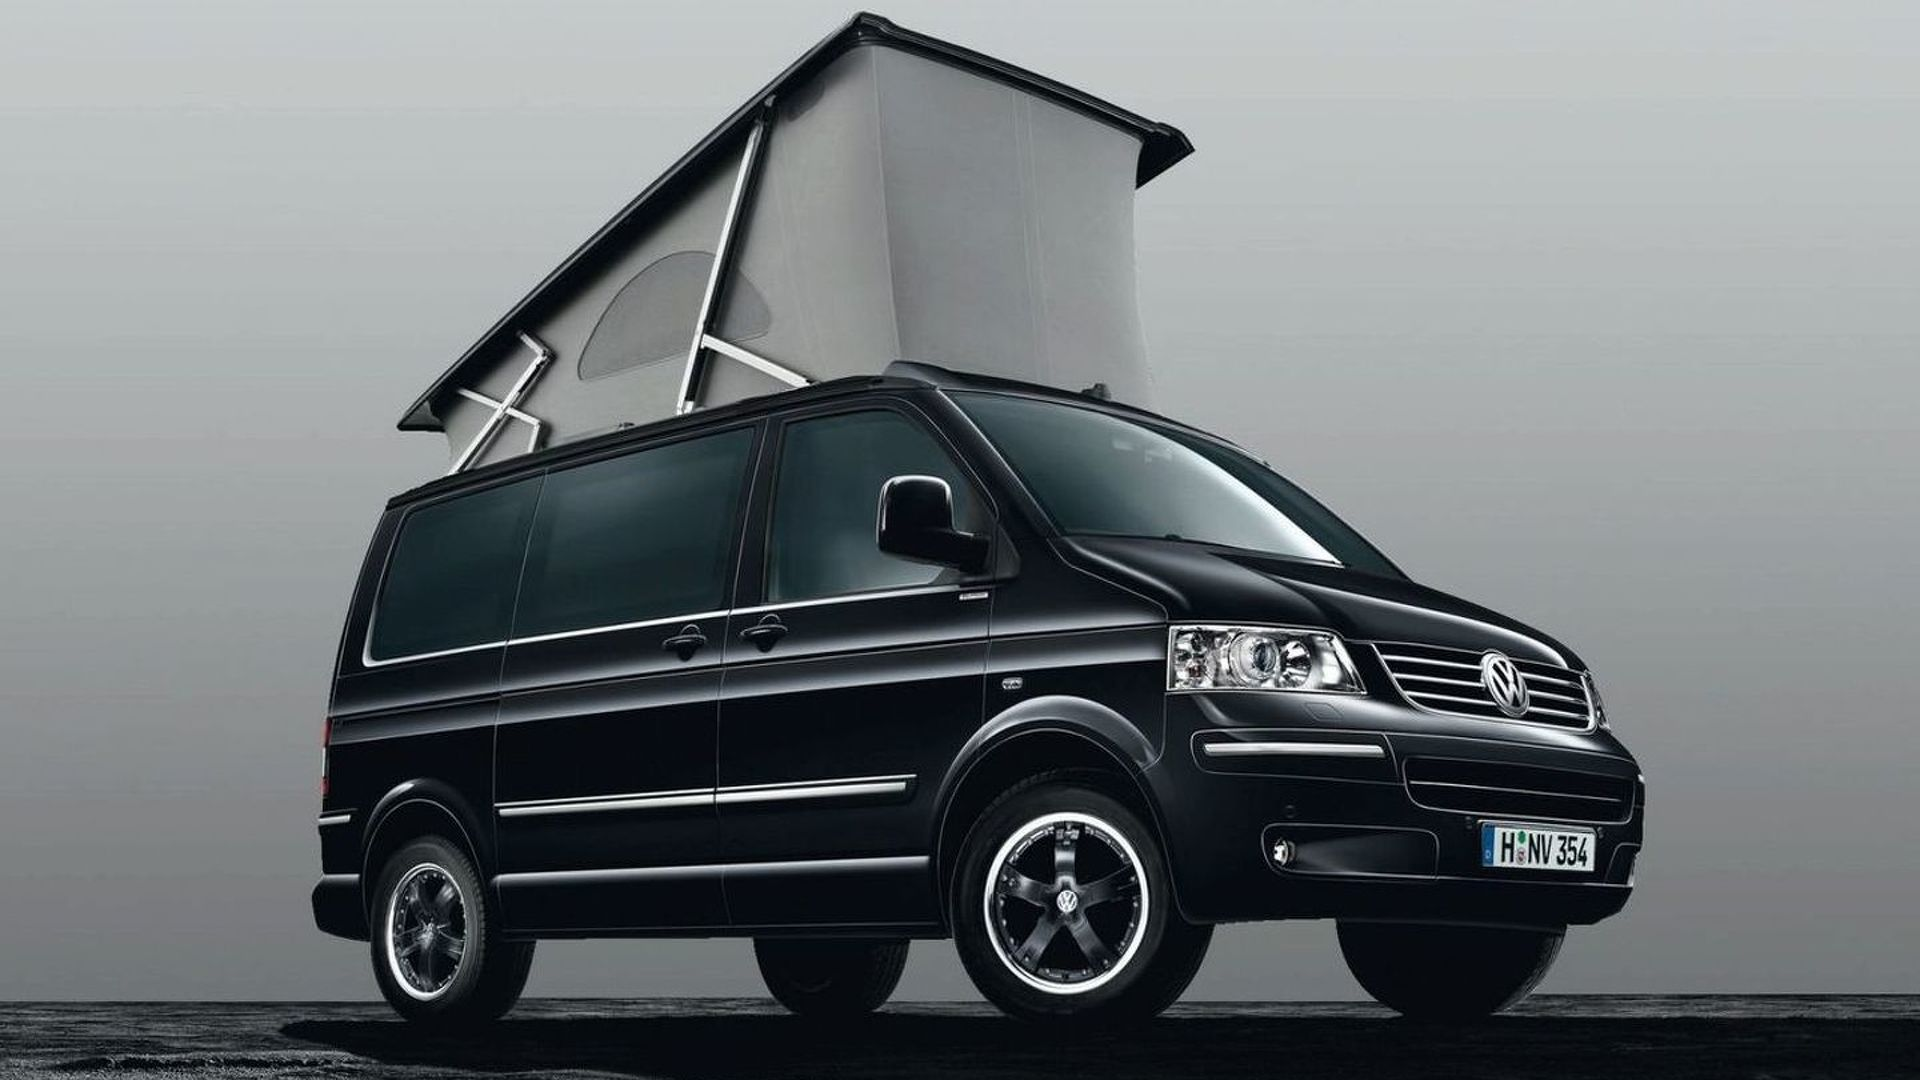 VW Releases California Black Edition in Germany